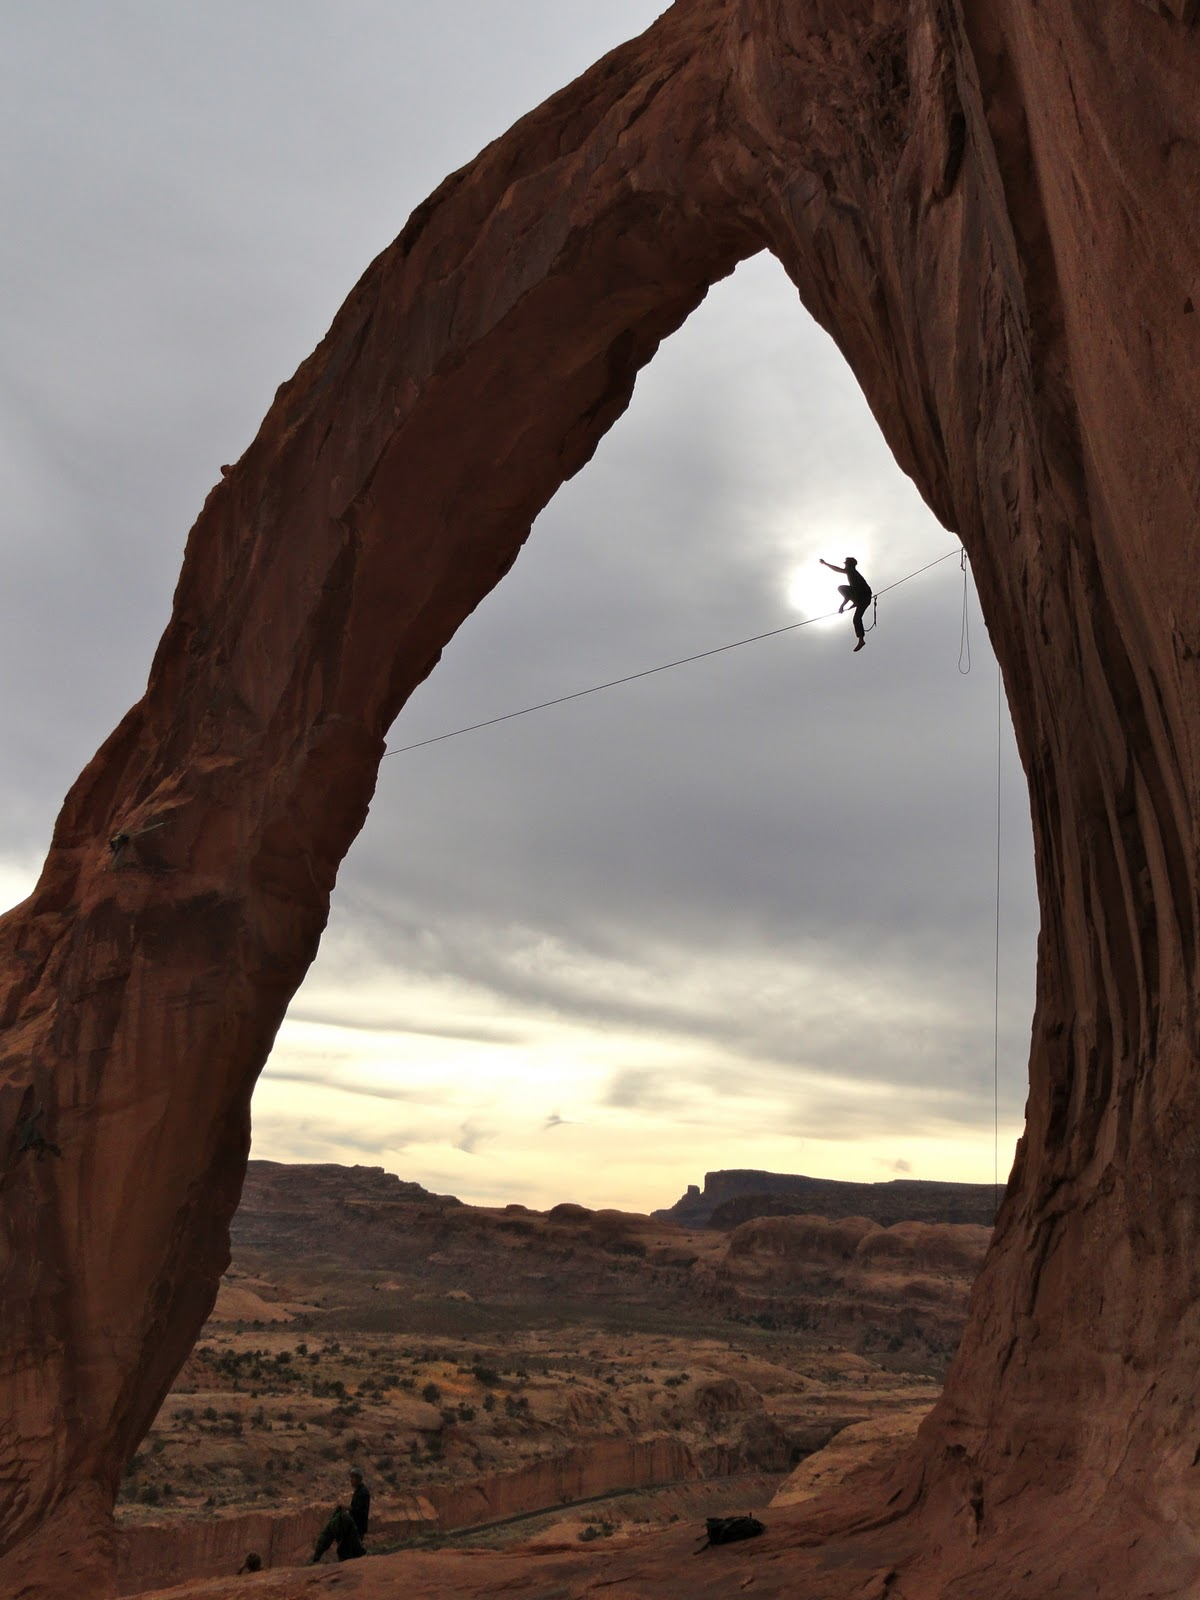 Rope activity at Moab